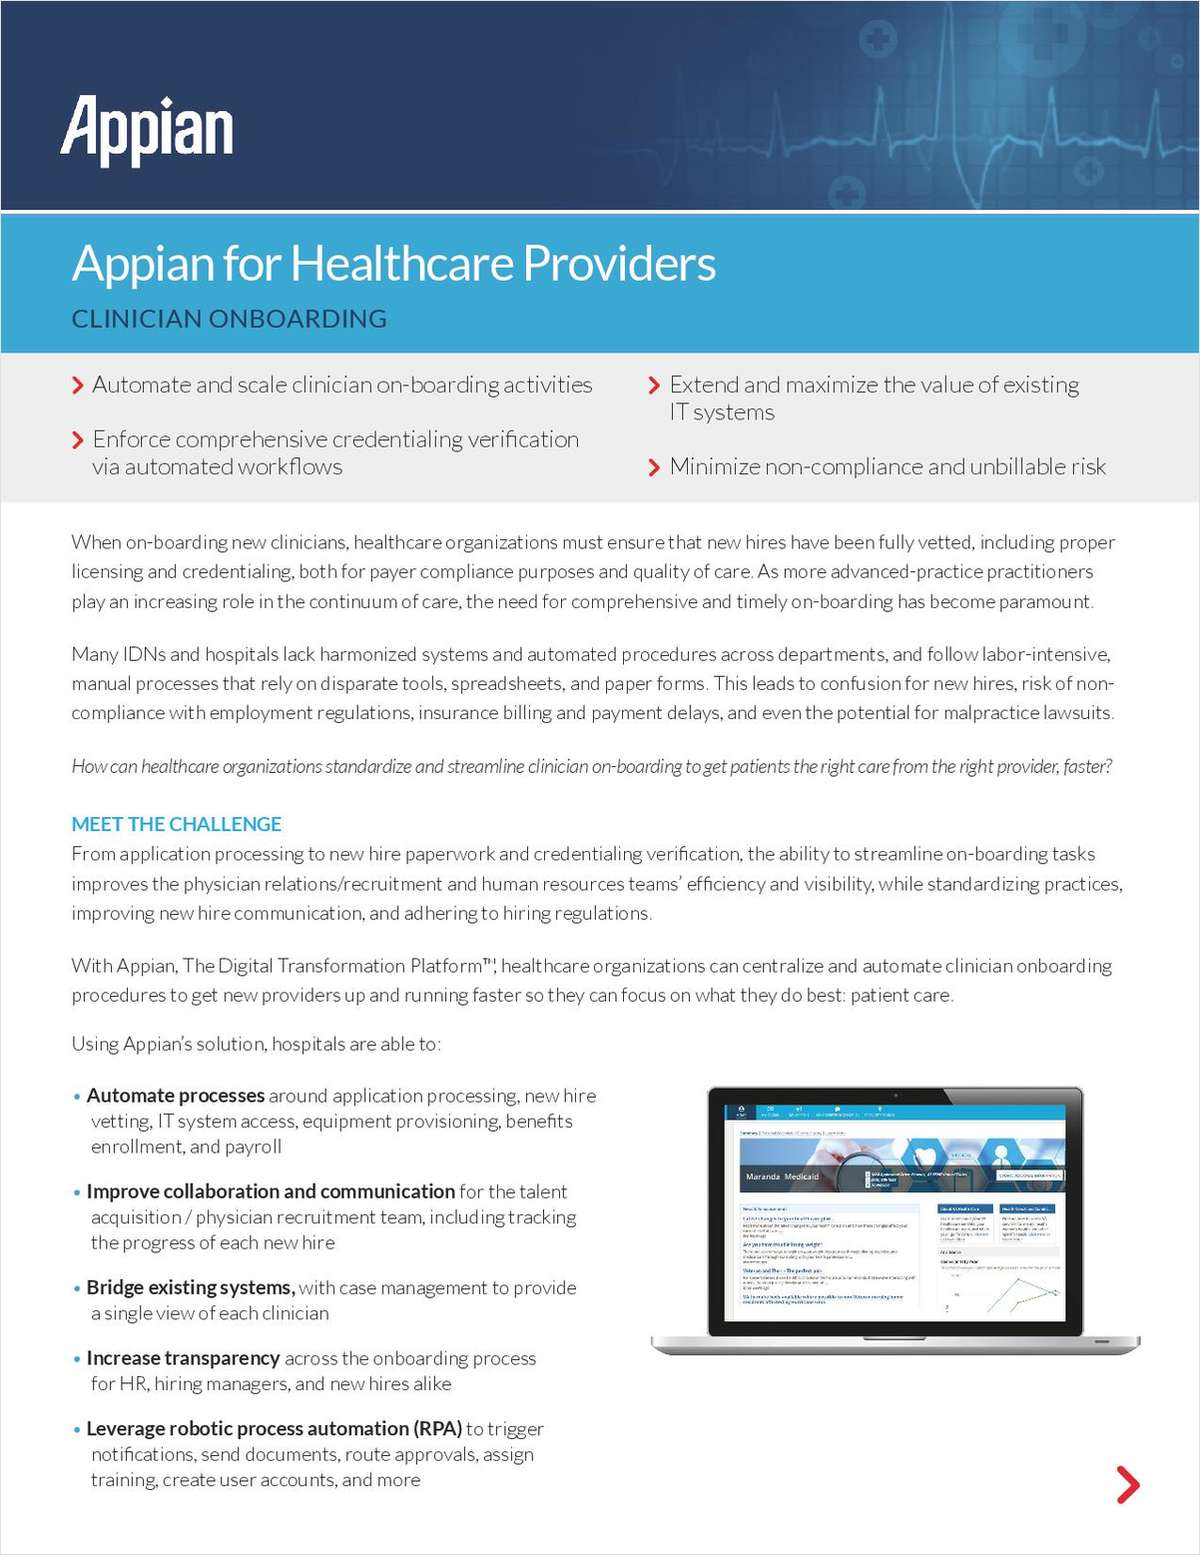 Appian for Healthcare Providers: Clinician Onboarding